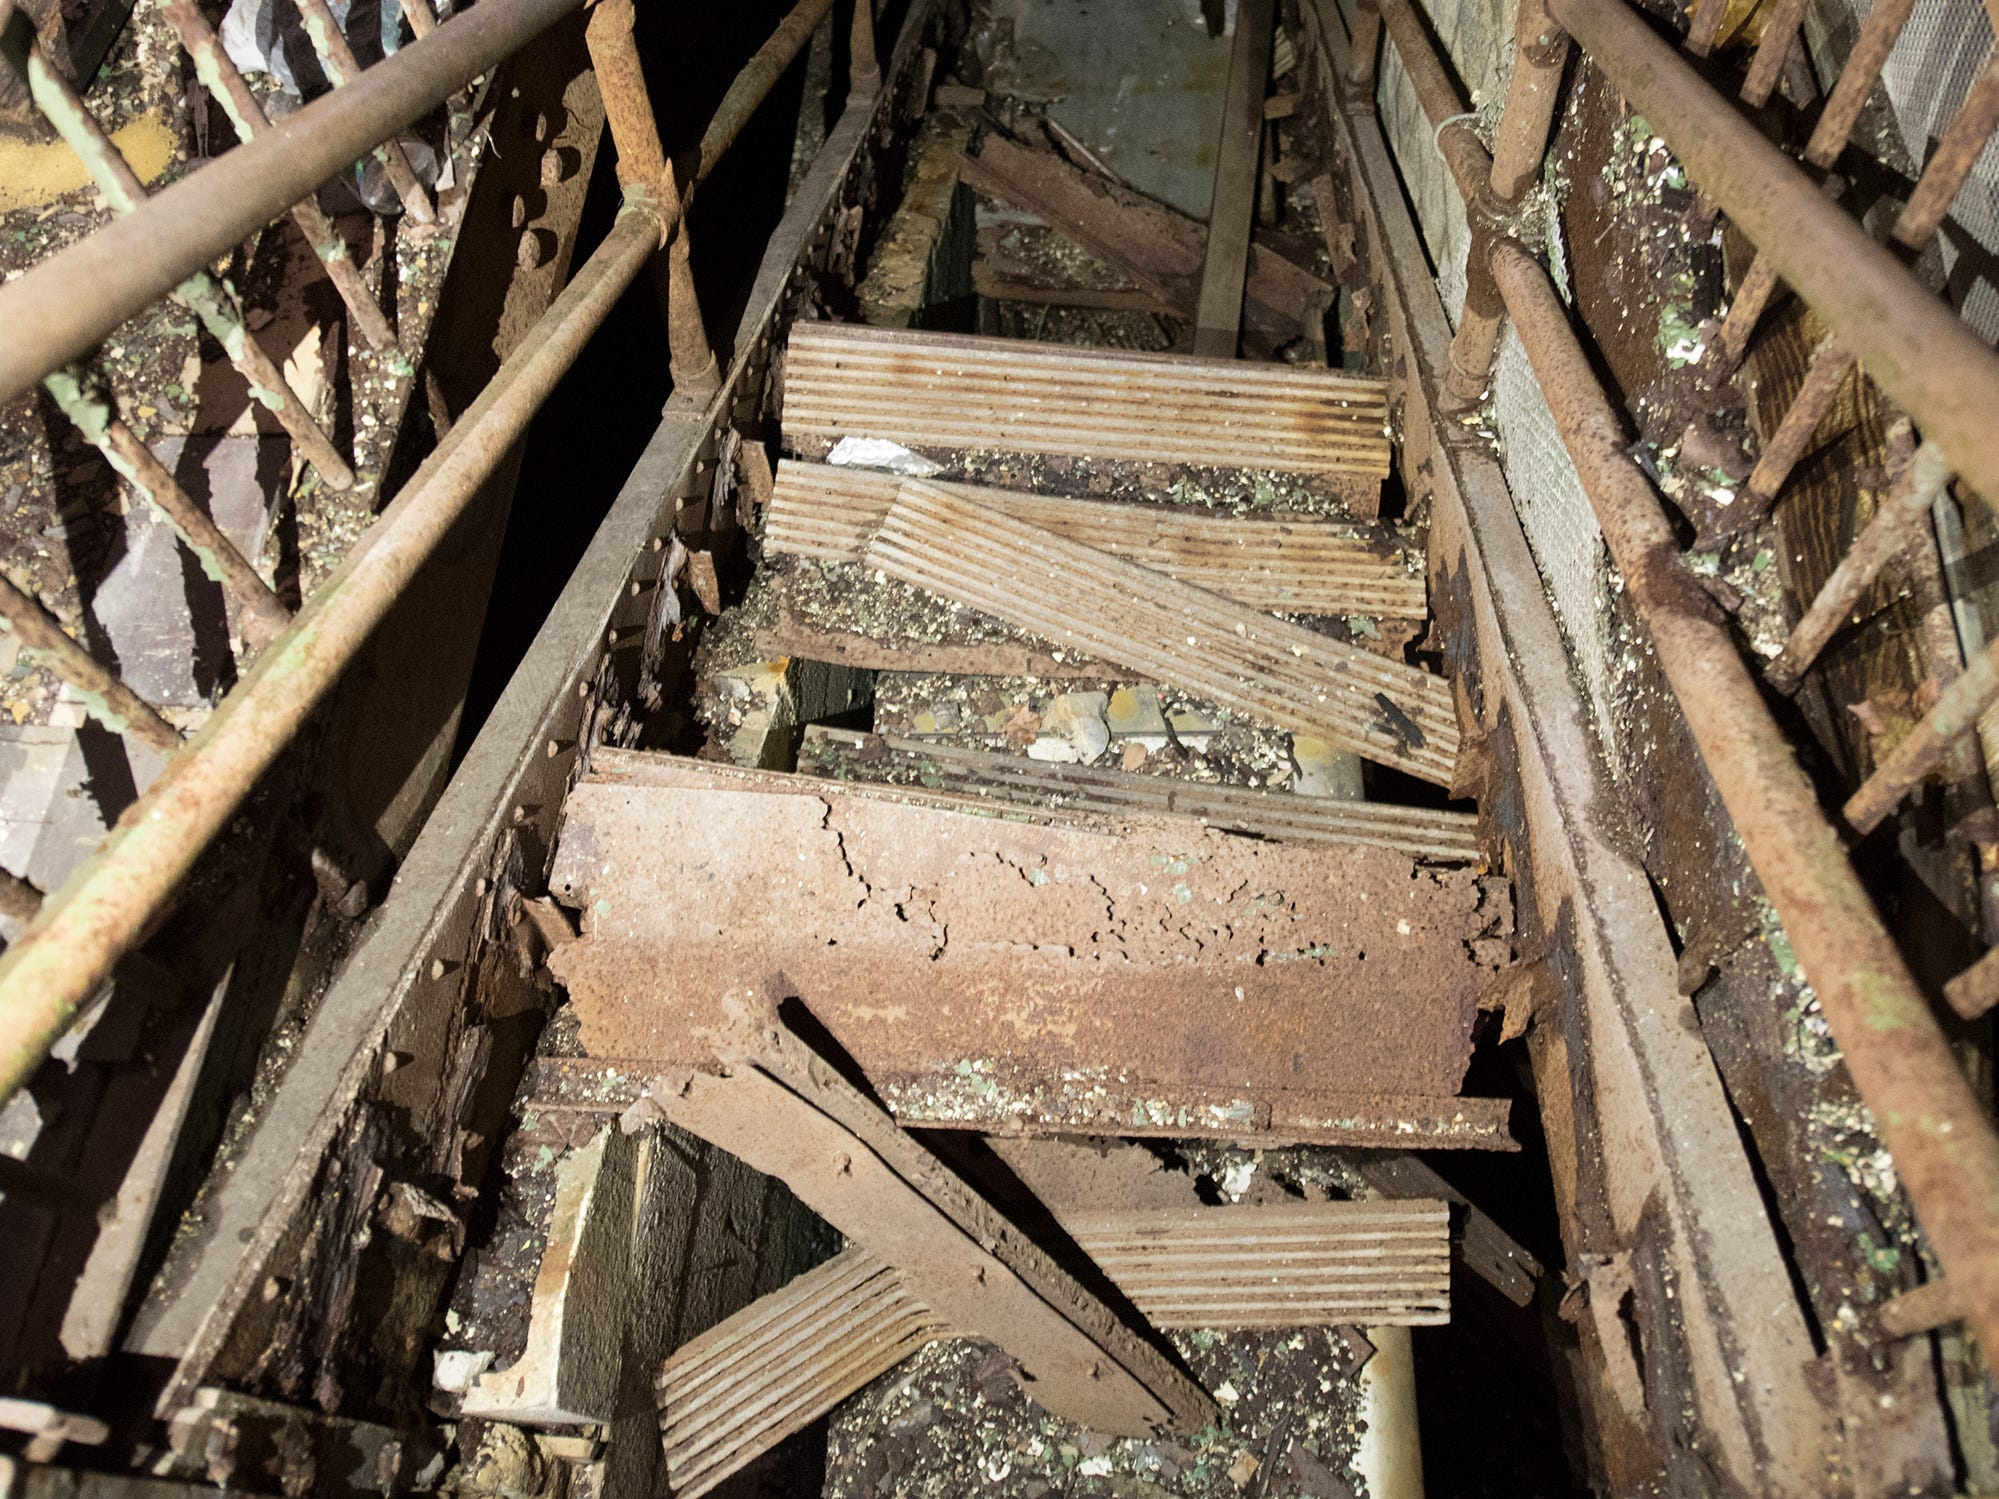 Metal stairs down to one side of the basement have deteriorated inside the old York County Prison.